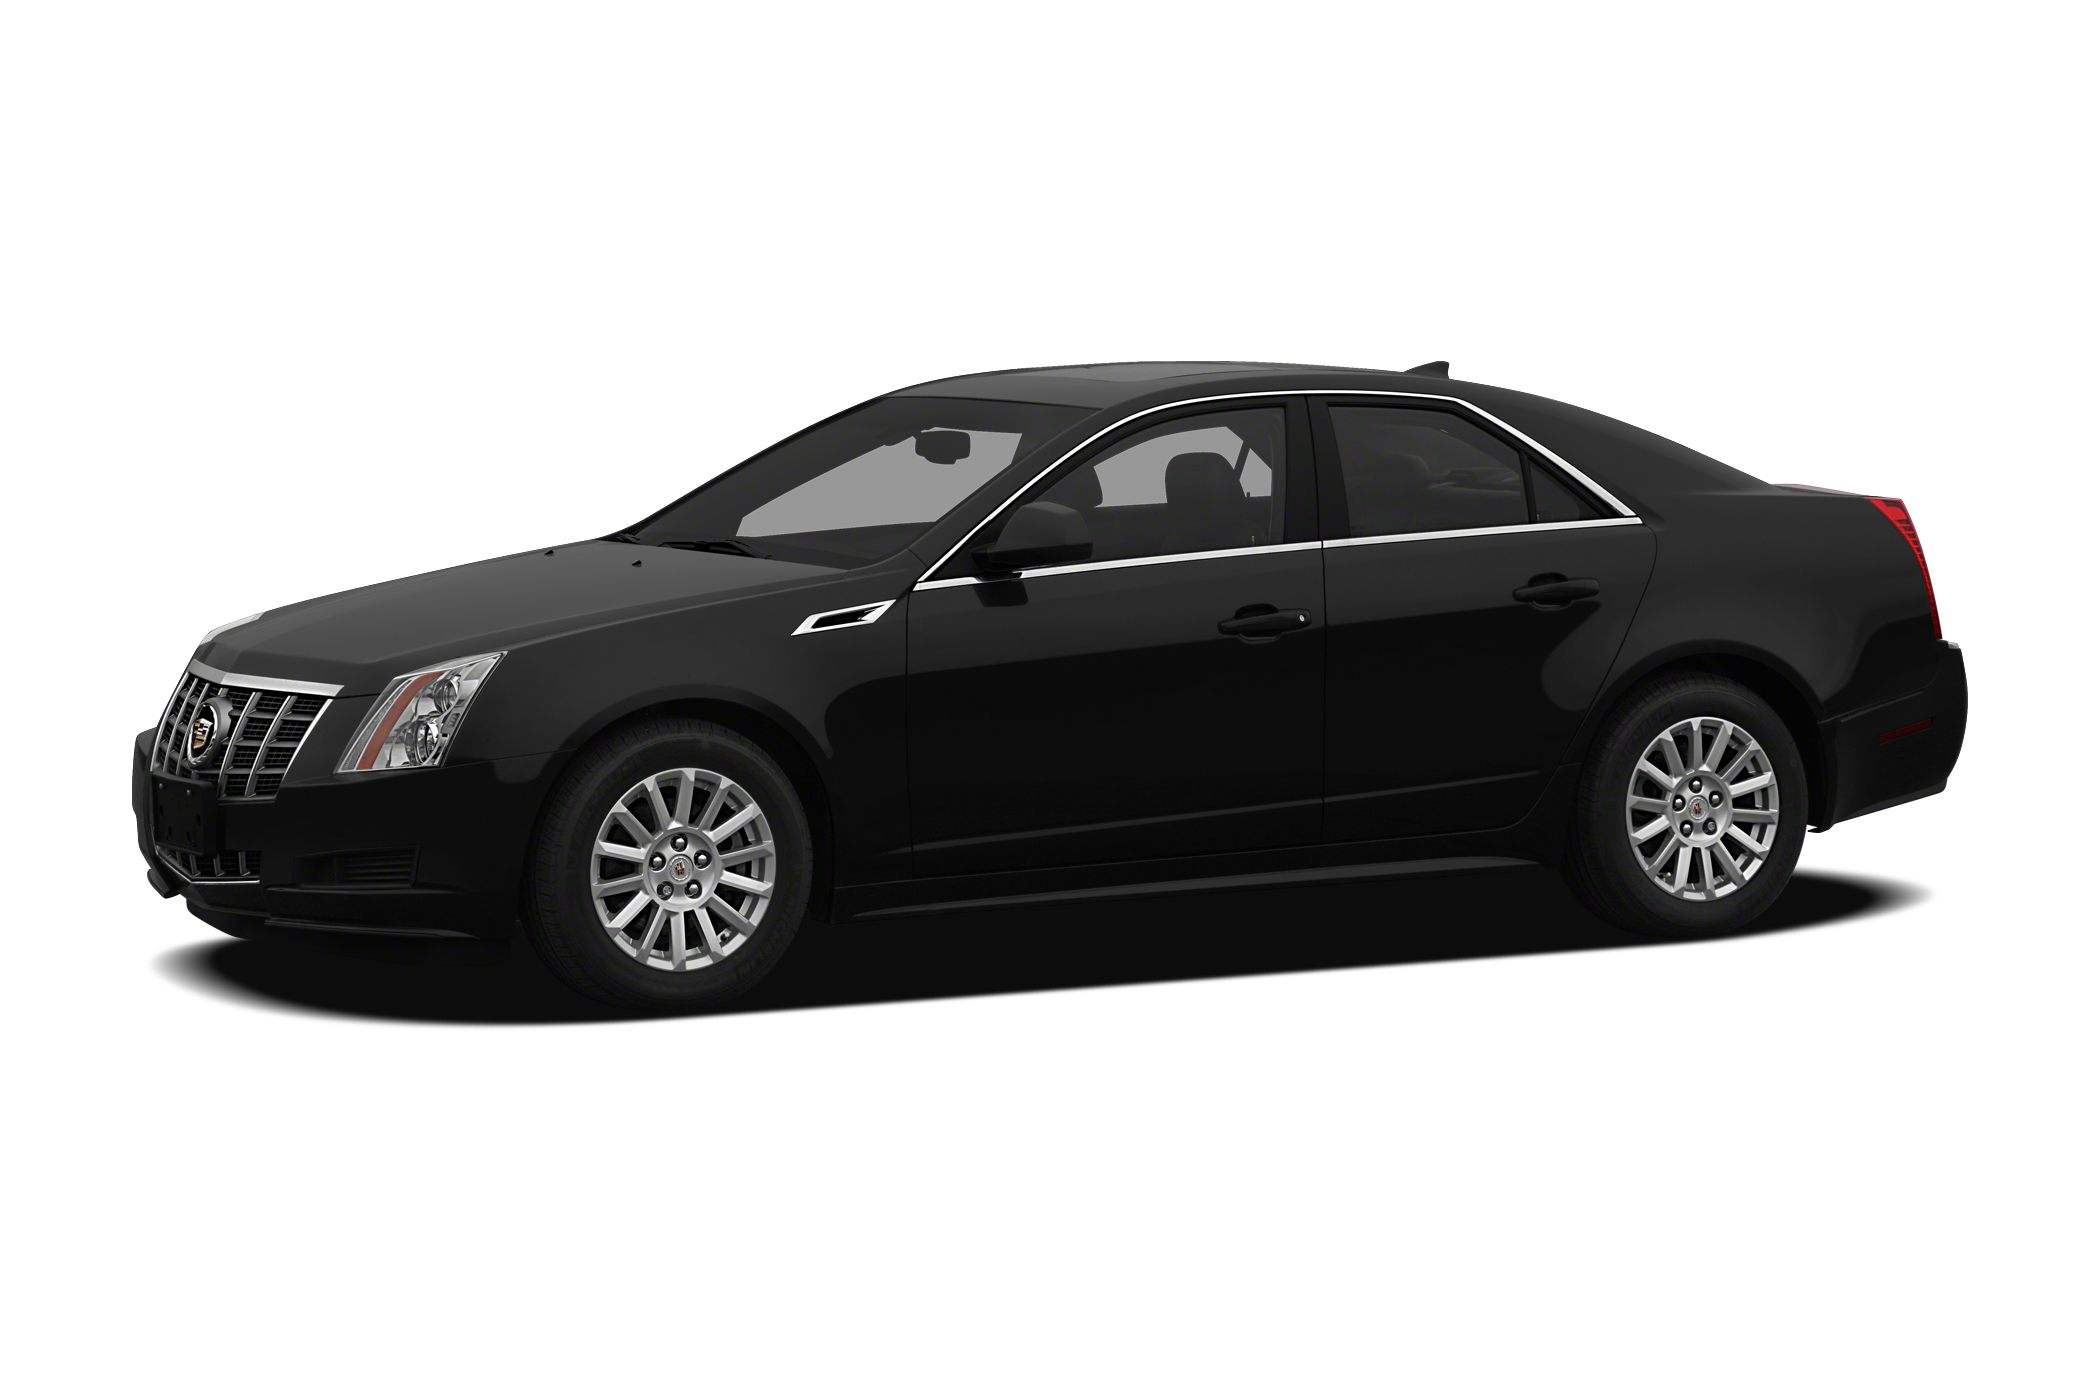 CAC20CAC111A0101 Great Description About 2012 Cts-v for Sale with Inspiring Images Cars Review